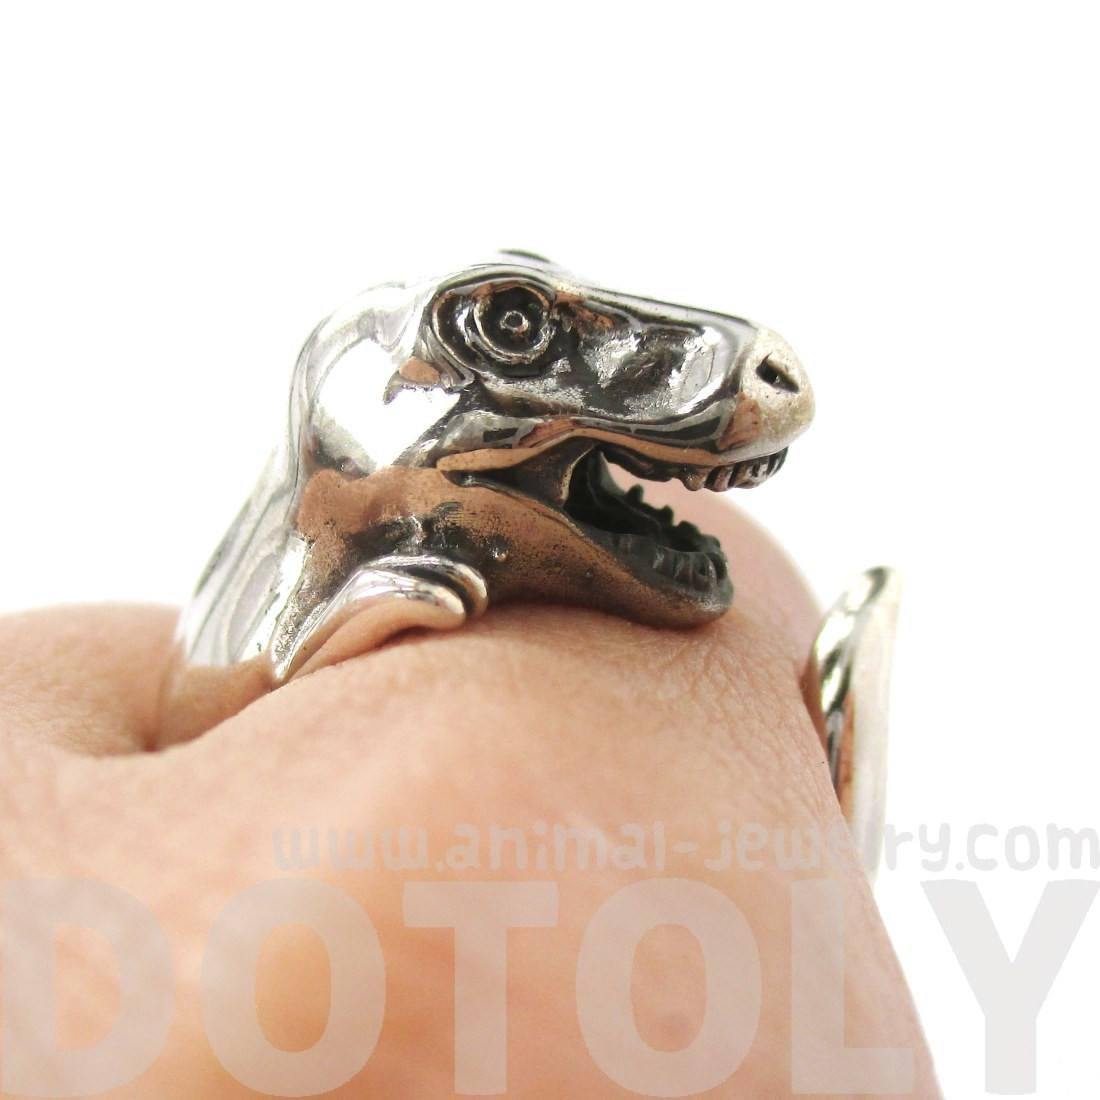 T Rex Dinosaur Shaped Animal Wrap Ring in 925 Sterling Silver